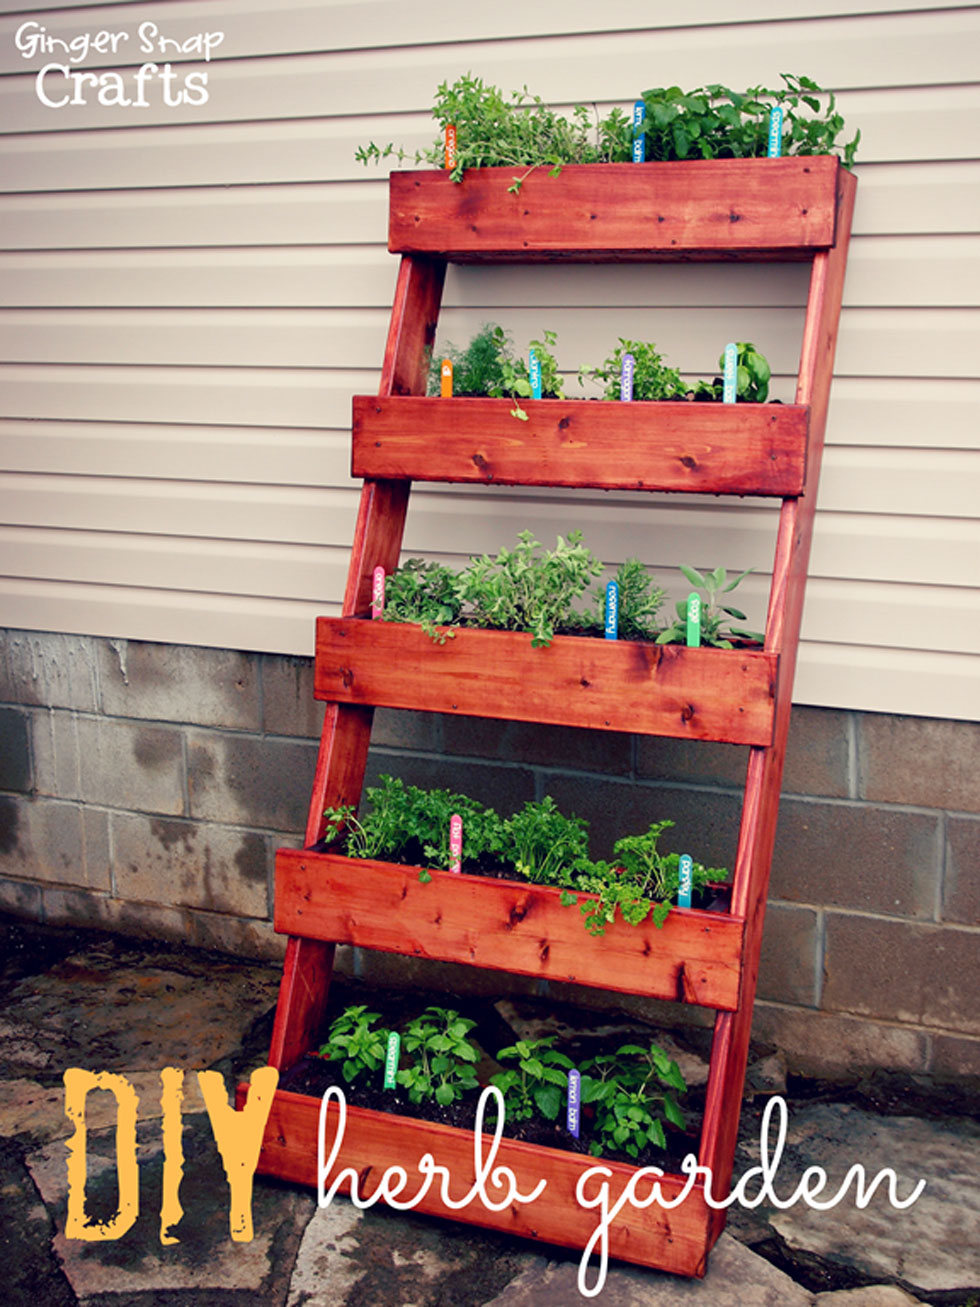 Garden Wall Ideas garden wall ideas doityourselfcom 26 Creative Ways To Plant A Vertical Garden How To Make A Vertical Garden